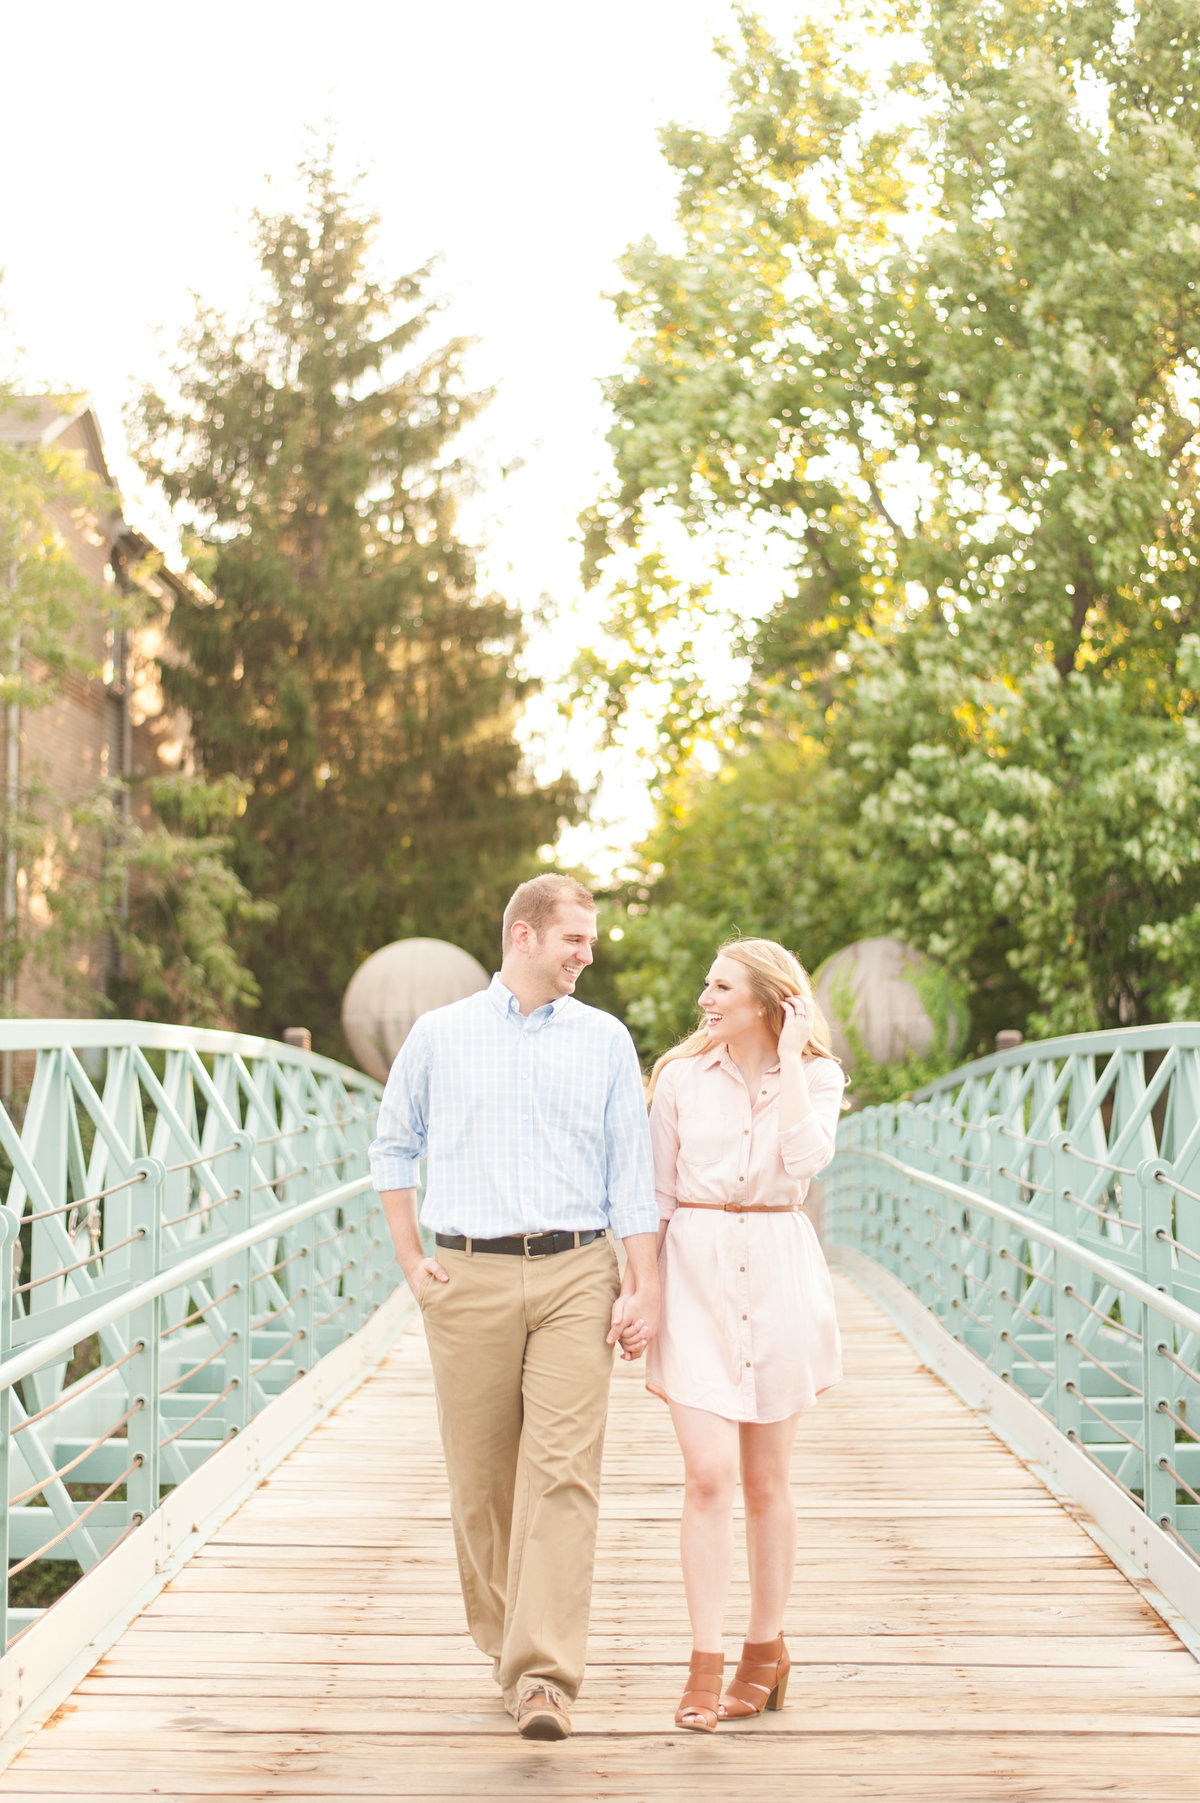 Kayla and Devin | Engaged-0037